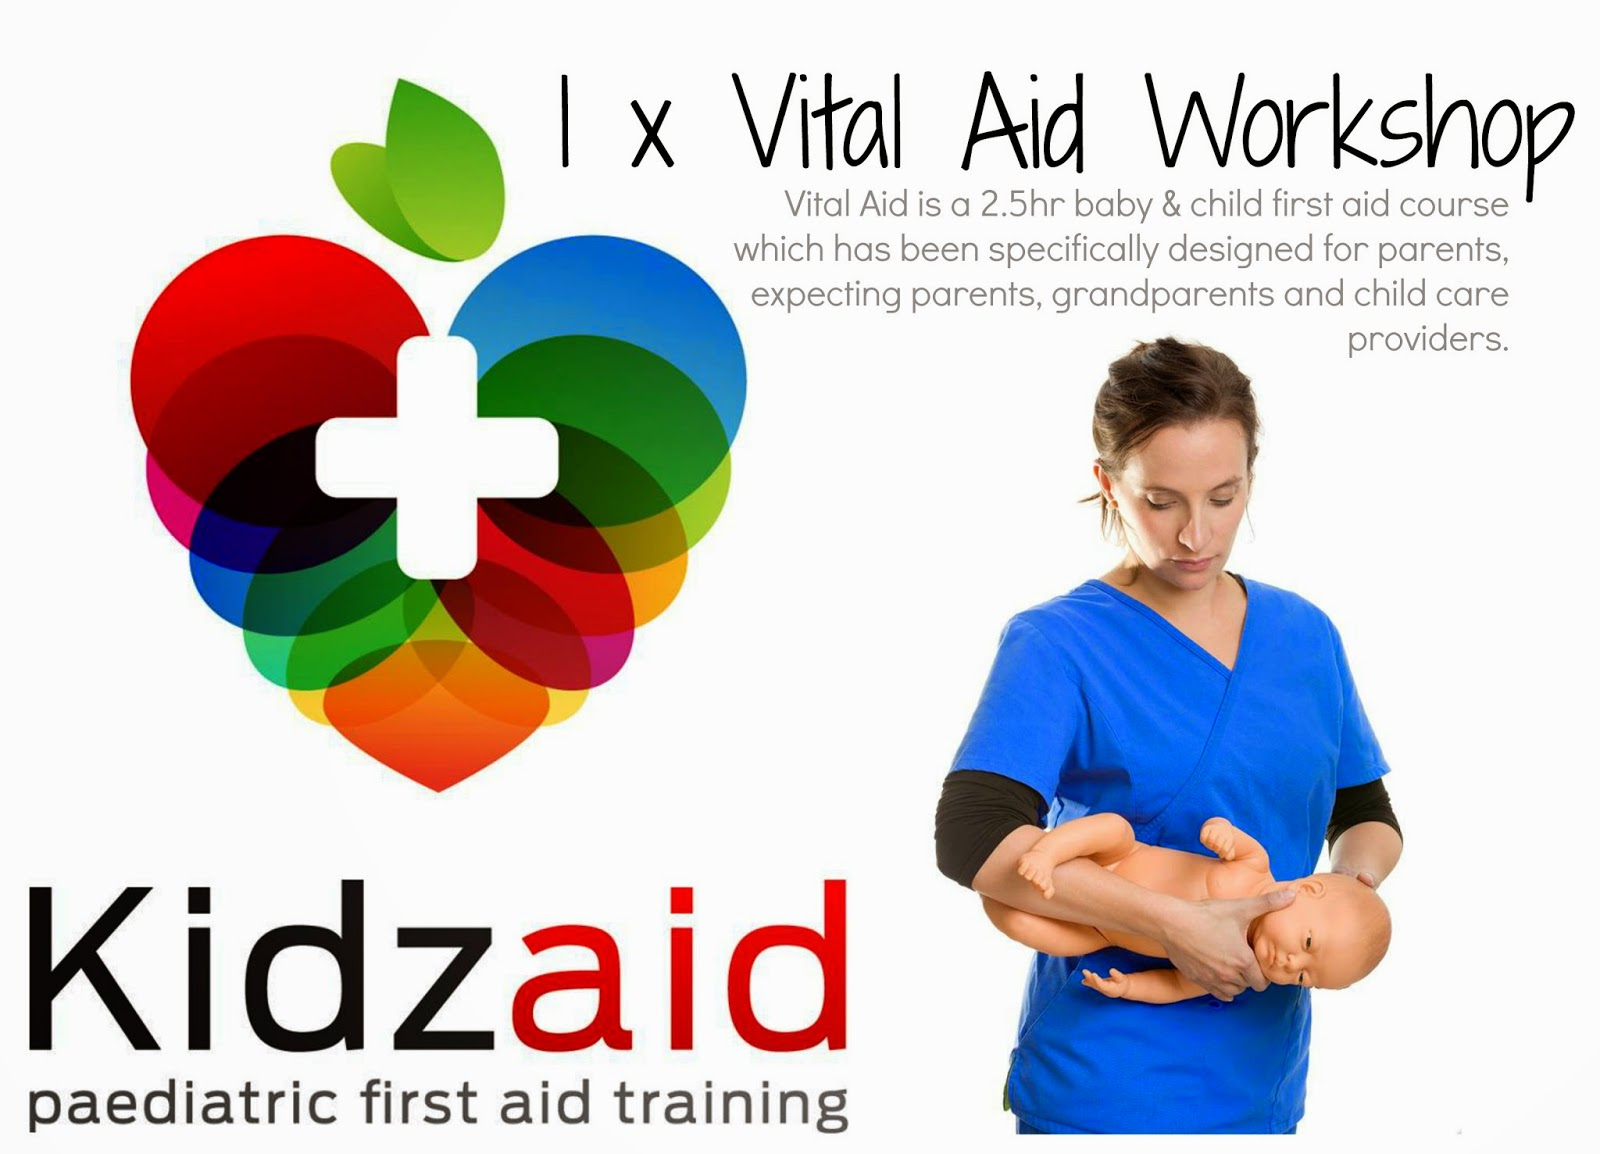 Kidzaid Australia vital aid workshop description for babies and kids